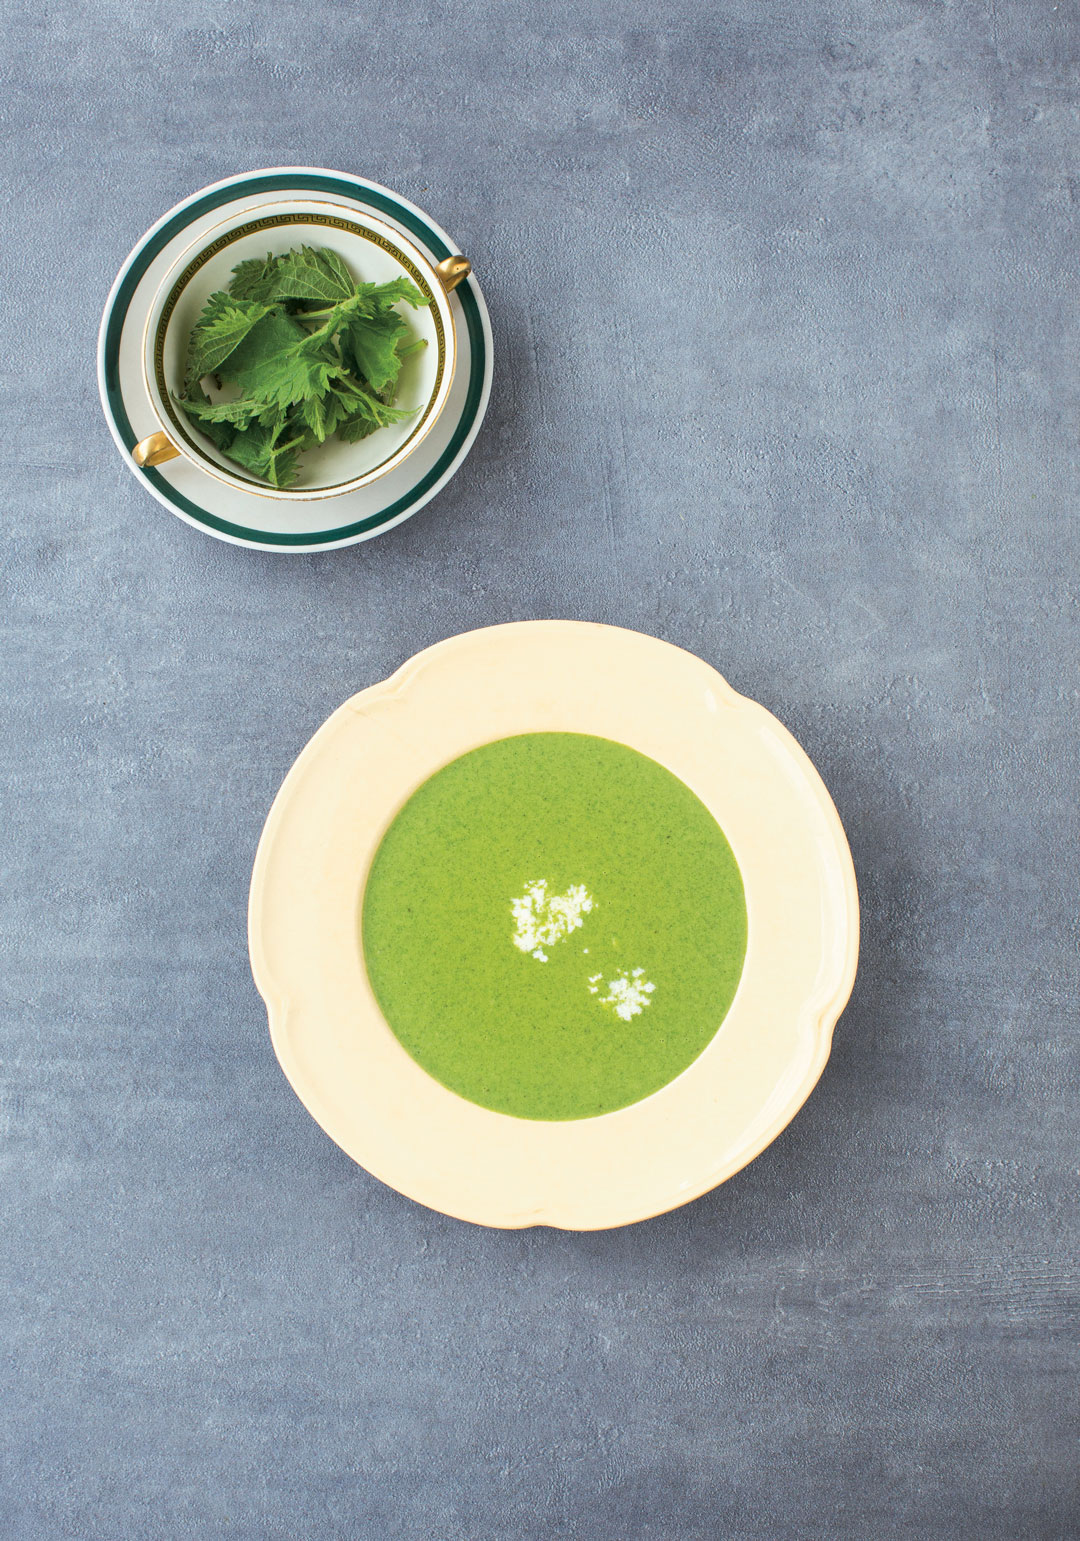 Nettle soup, from The Irish Cookbook